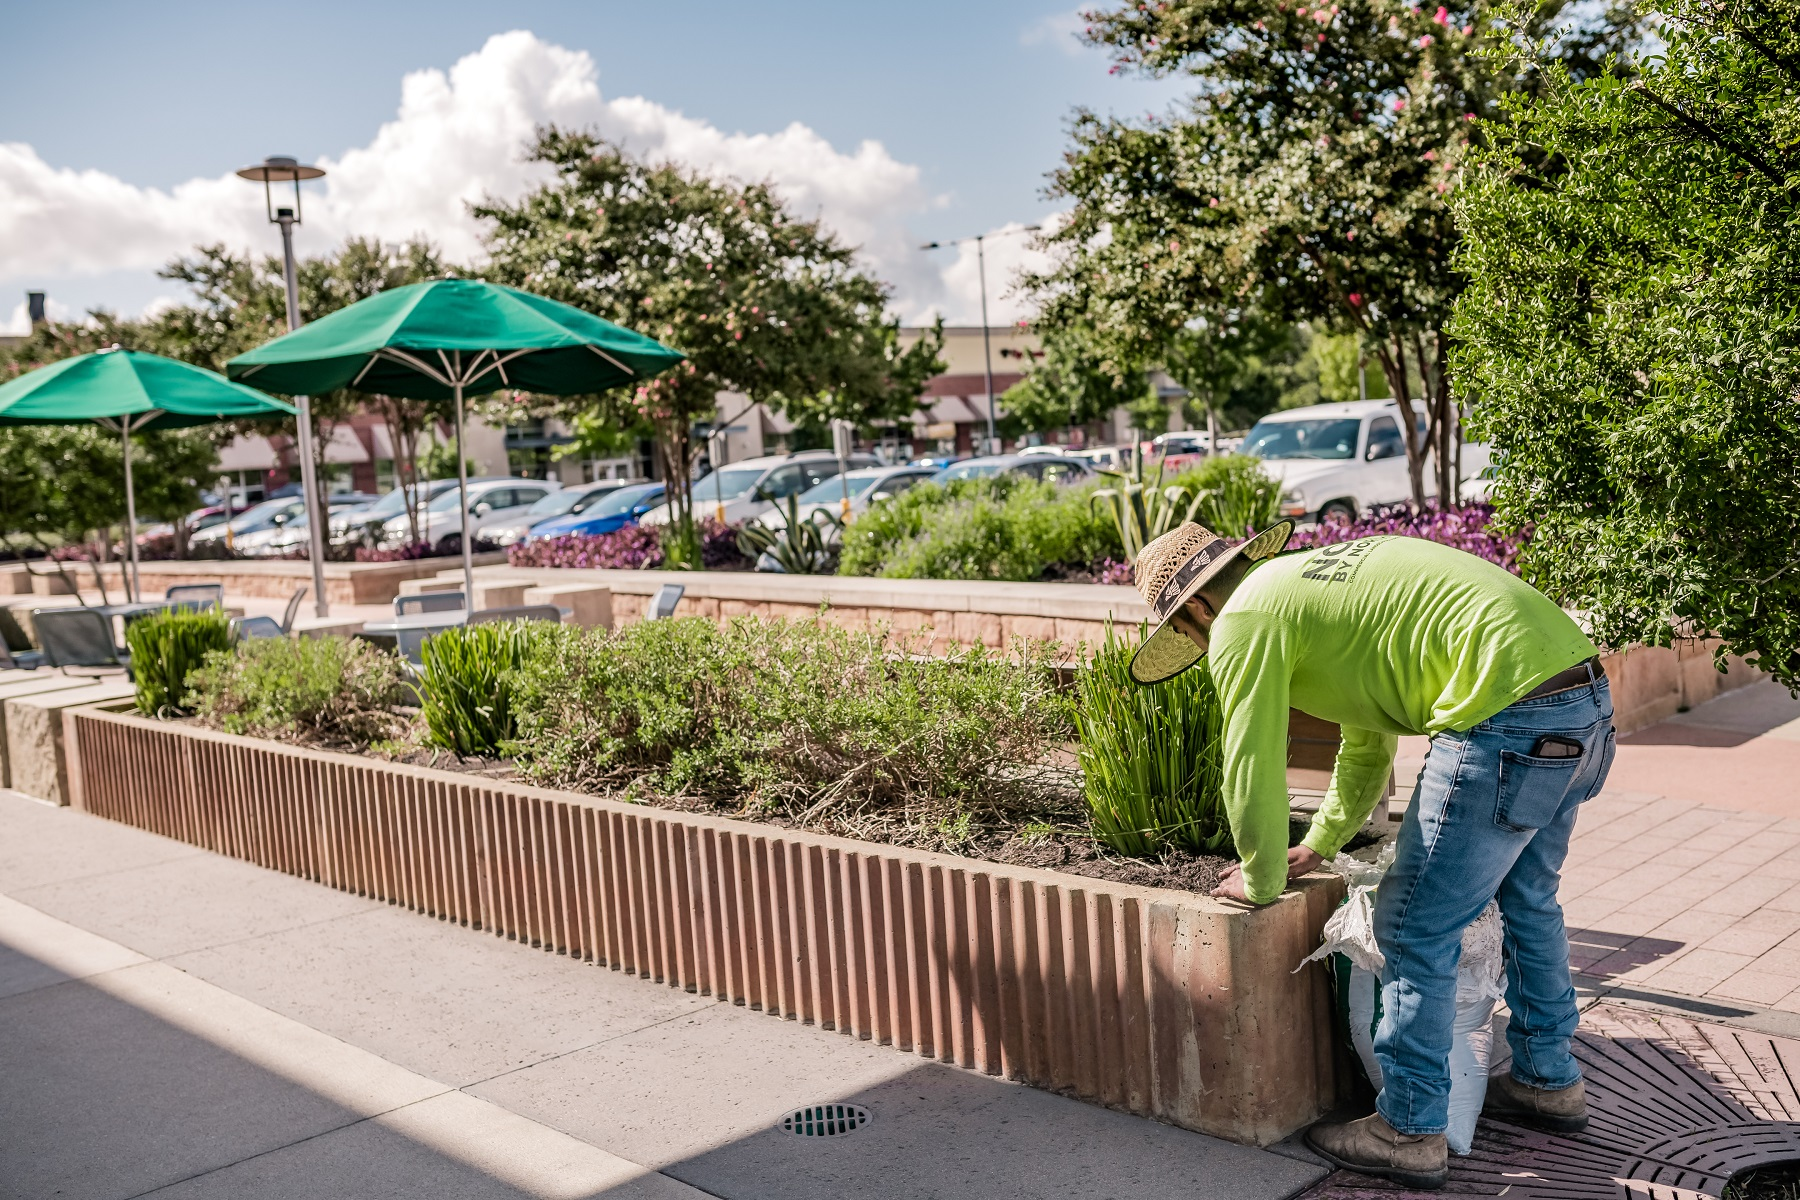 Commercial property mulching